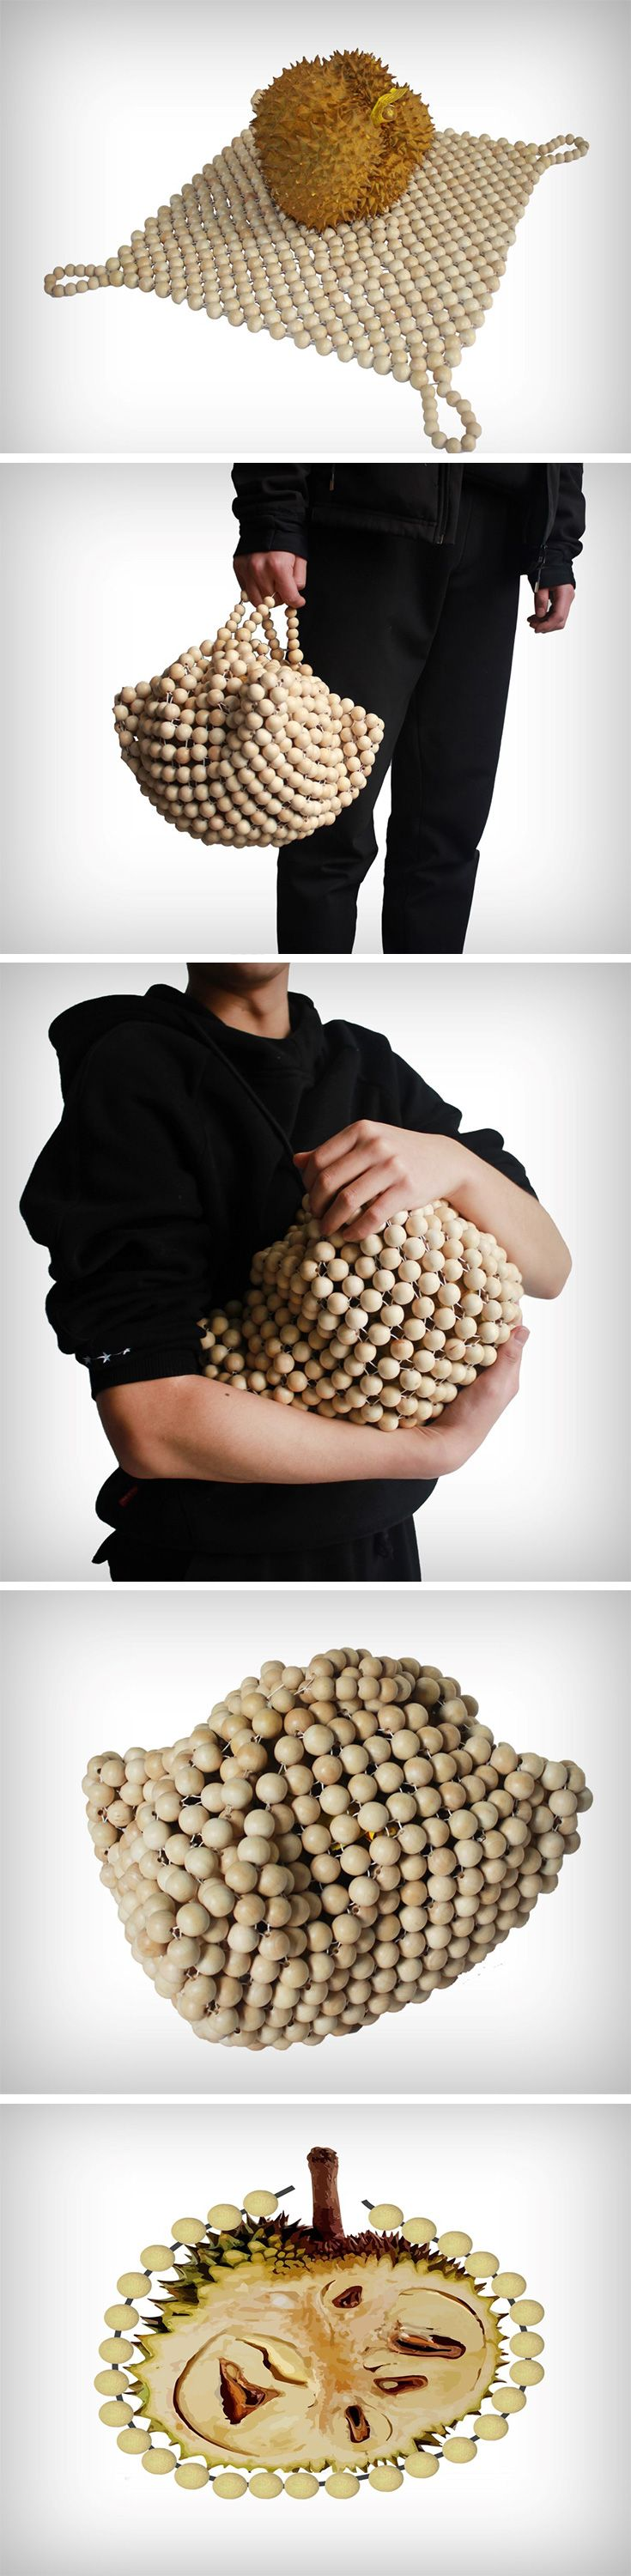 "How does one buy and carry the durian then? It tears through most plastic bags (""duri"" means spiky in the Malay language) and can often hurt palms when carried by hand. Designers from Wenzhou College developed a bag especially for carrying the Durian safely. Its construction involves a mesh of paper balls that create a perfect container for the spiky durian."